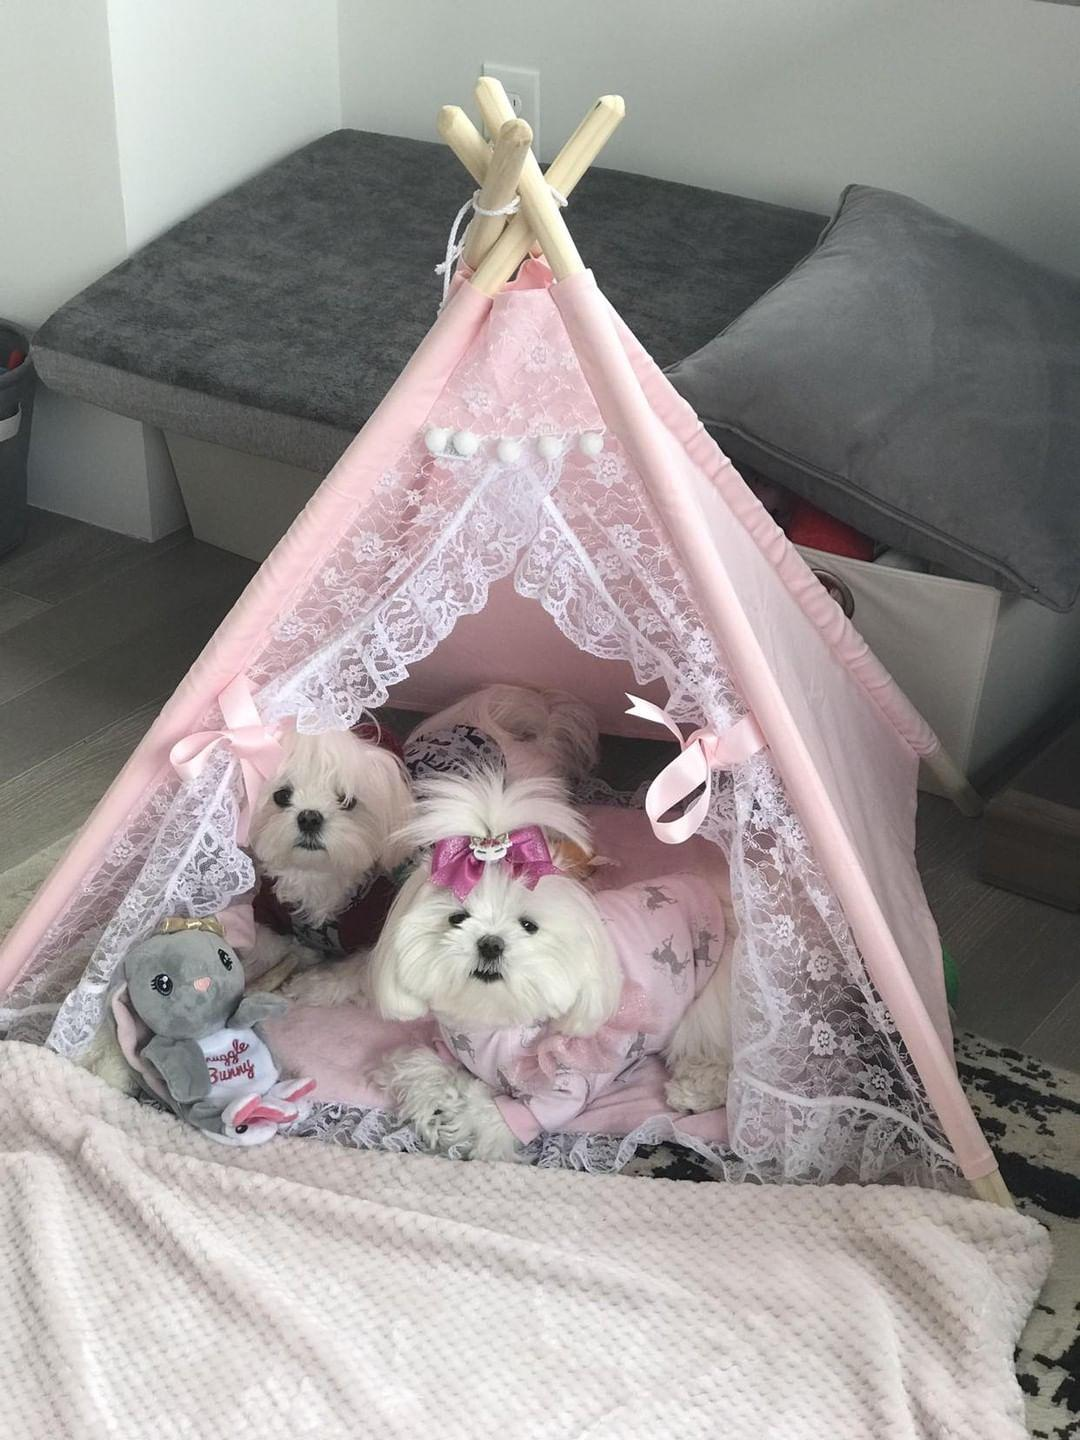 Ollie & Aggie - When Aggie saw this teepee she just had to have it. It is so beautiful and very well made. When the teepee arrived it was so amazing that I had to take over. Mommy I need a blue one just for me. Customer service is amazing and the shipping was very quick. Miss Teddy you rock!! Love, Ollie and Aggie